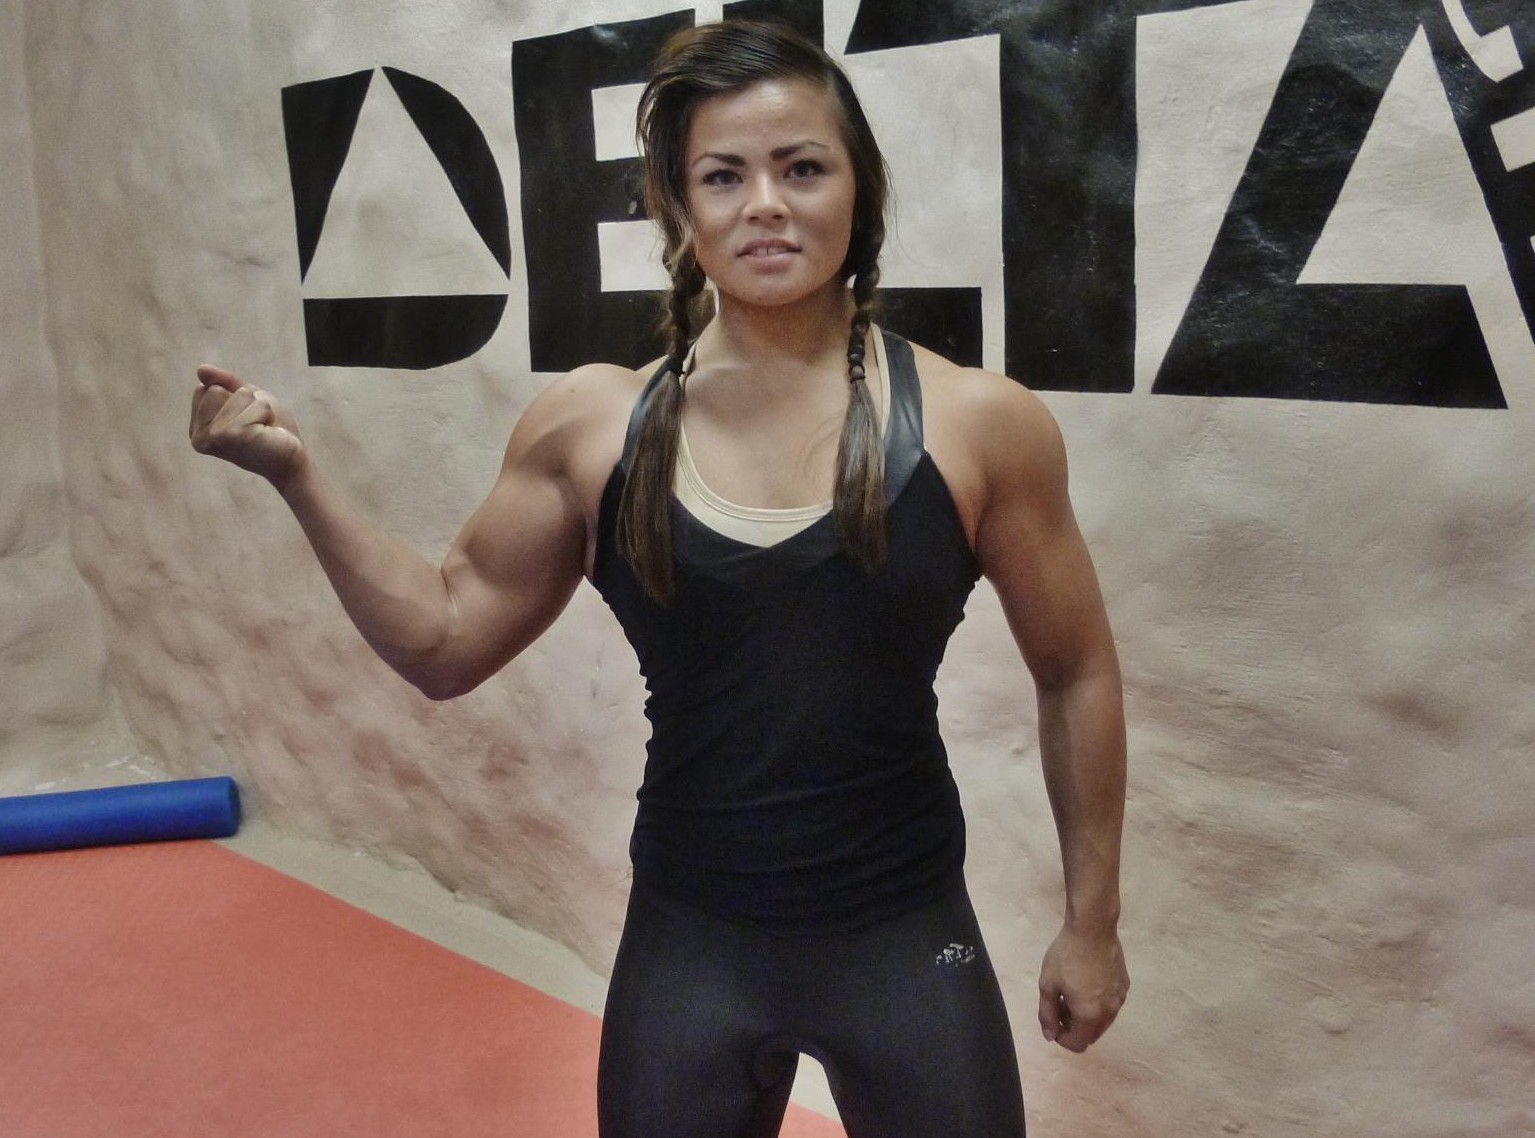 female bodybuilding dating World's most extreme female bodybuilders posted on march 24, 2010 by grace murano cateogory: strange people 1,294,901 views muscular bodies are.